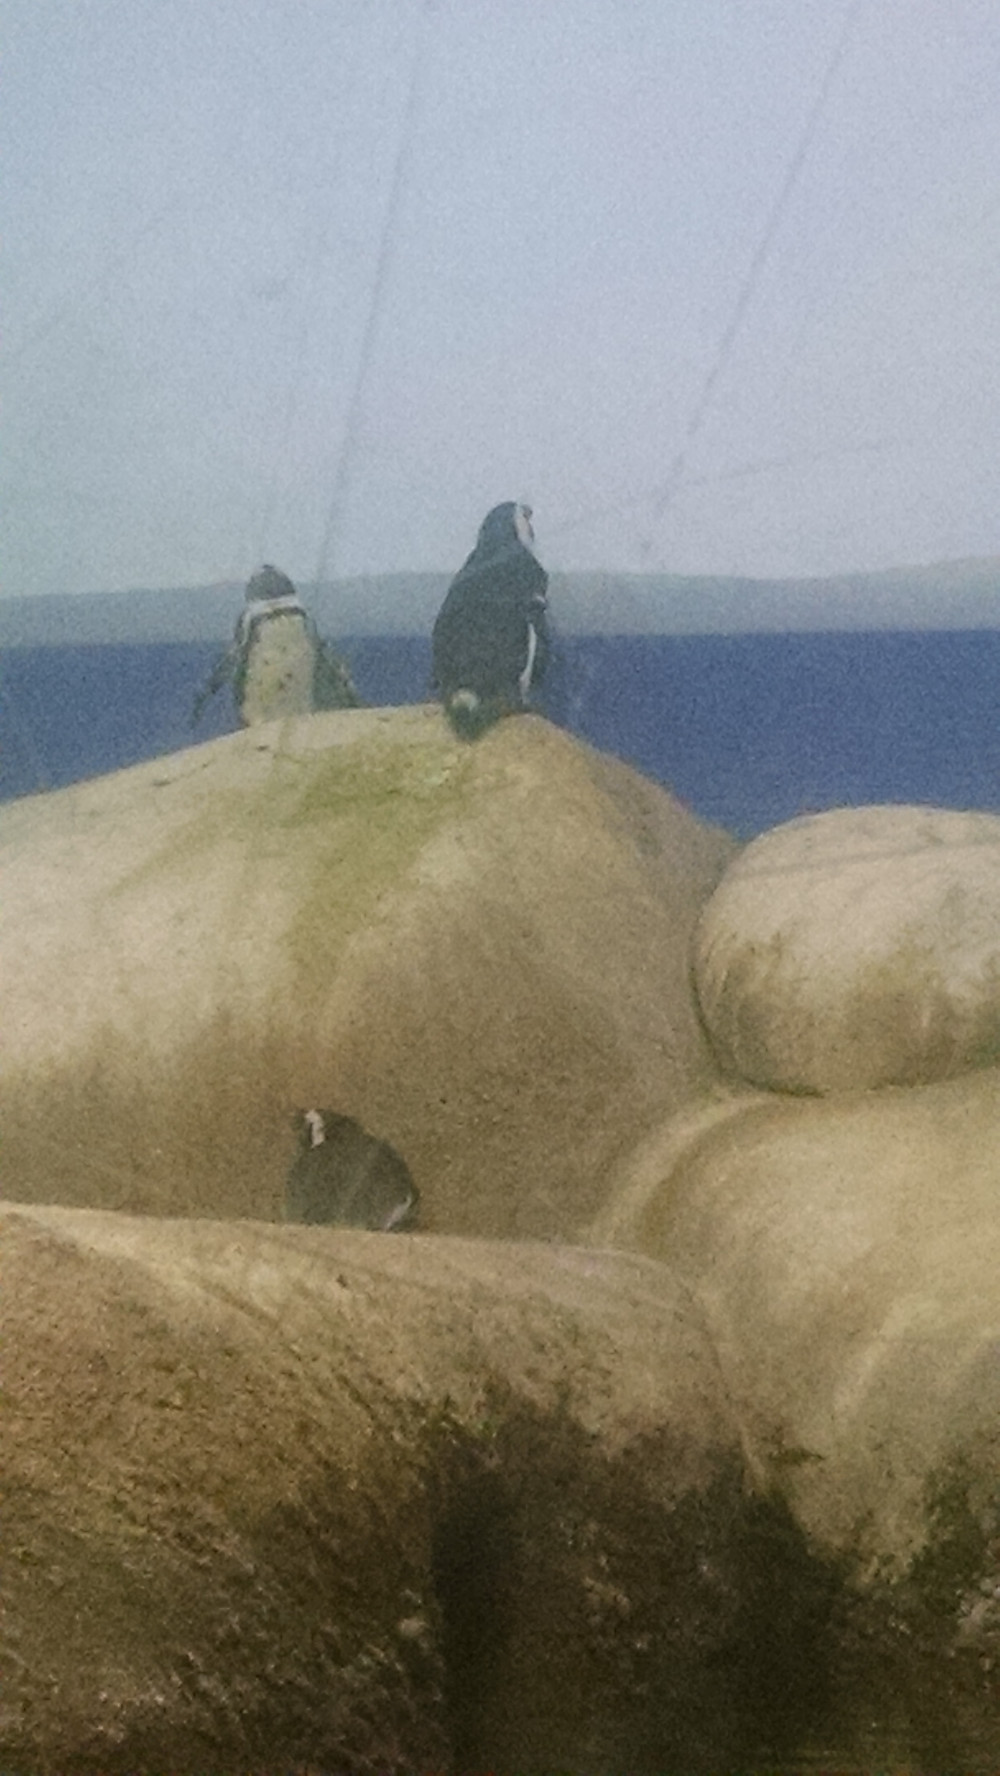 Hang in there, penguin.